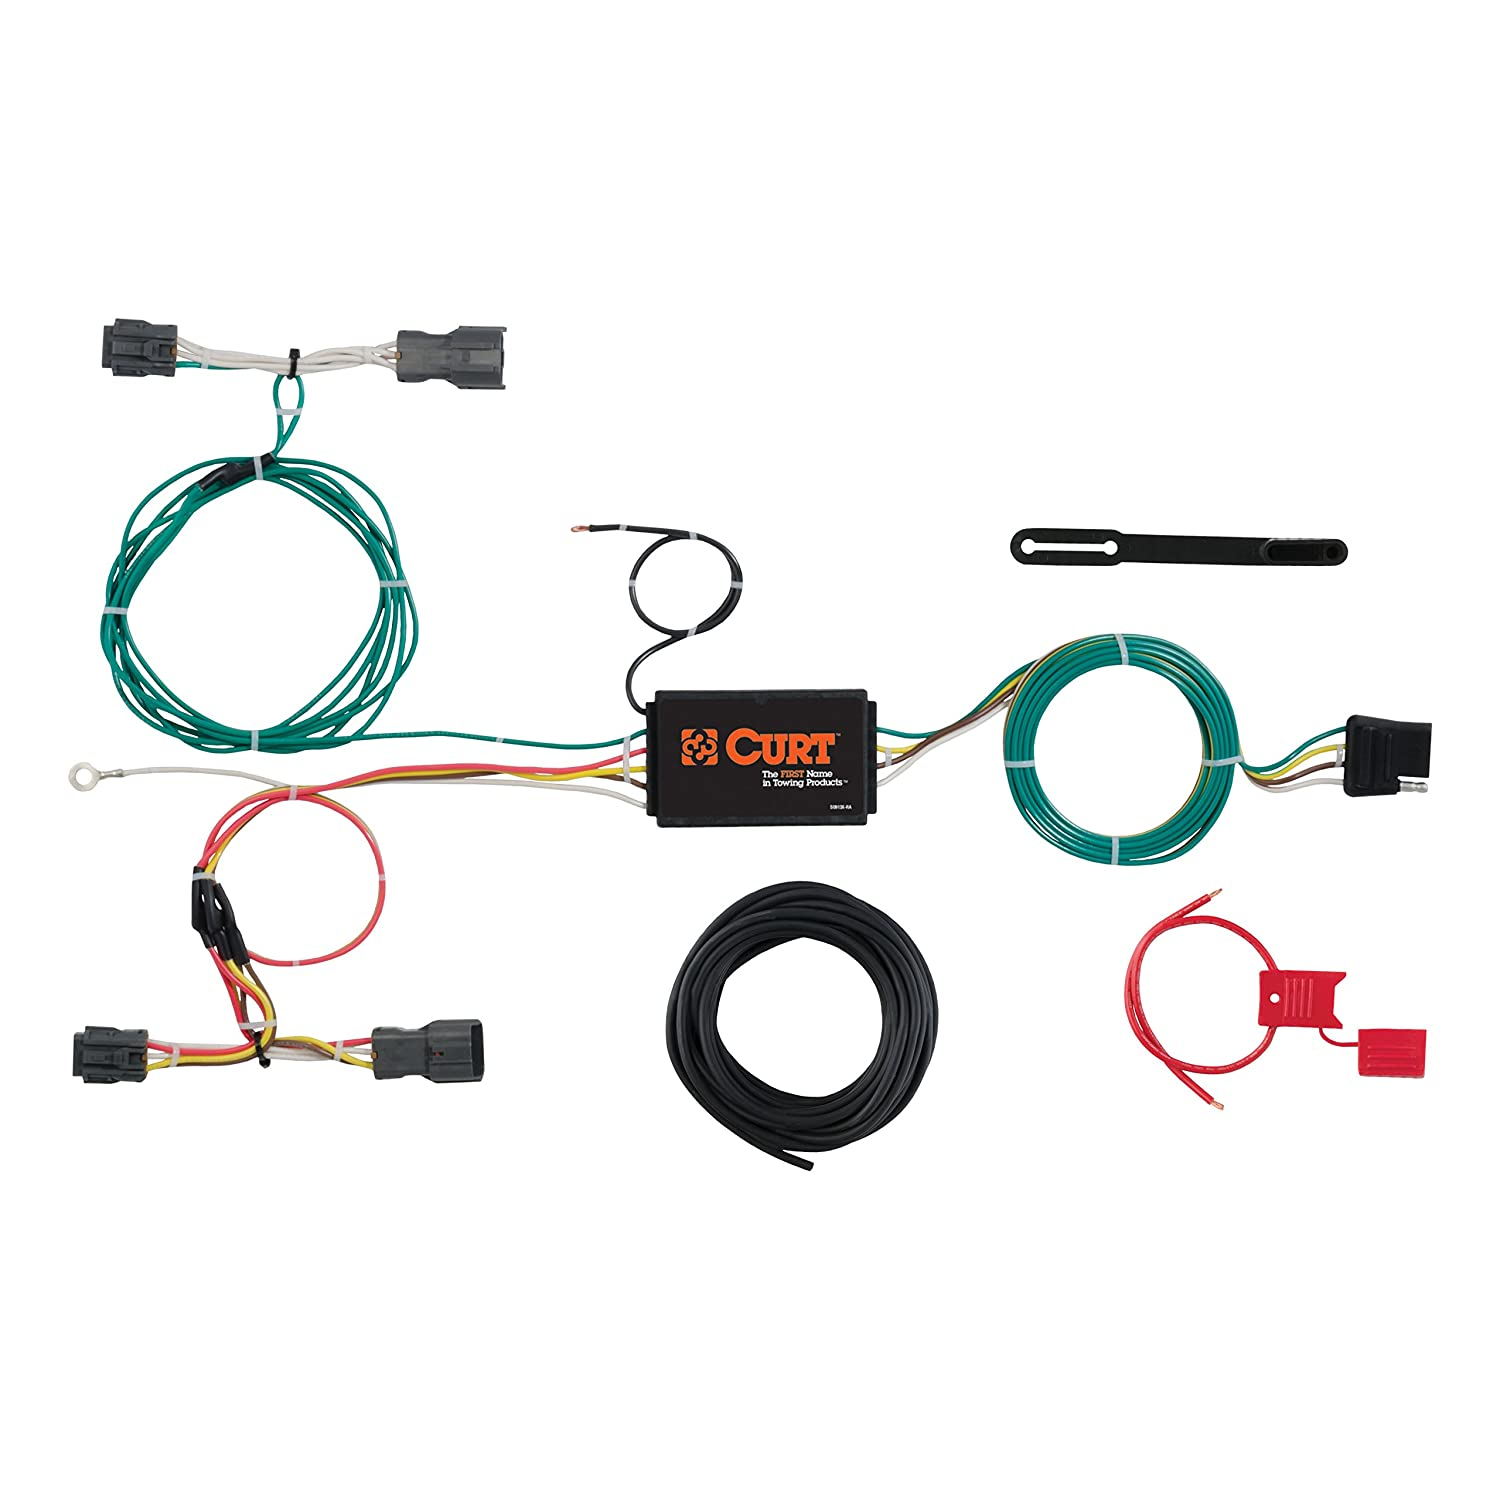 Curt Trailer Wiring Kits House Diagram Symbols Hoppy Towing Products Amazon Com 56277 Custom Harness Automotive Rh Brake